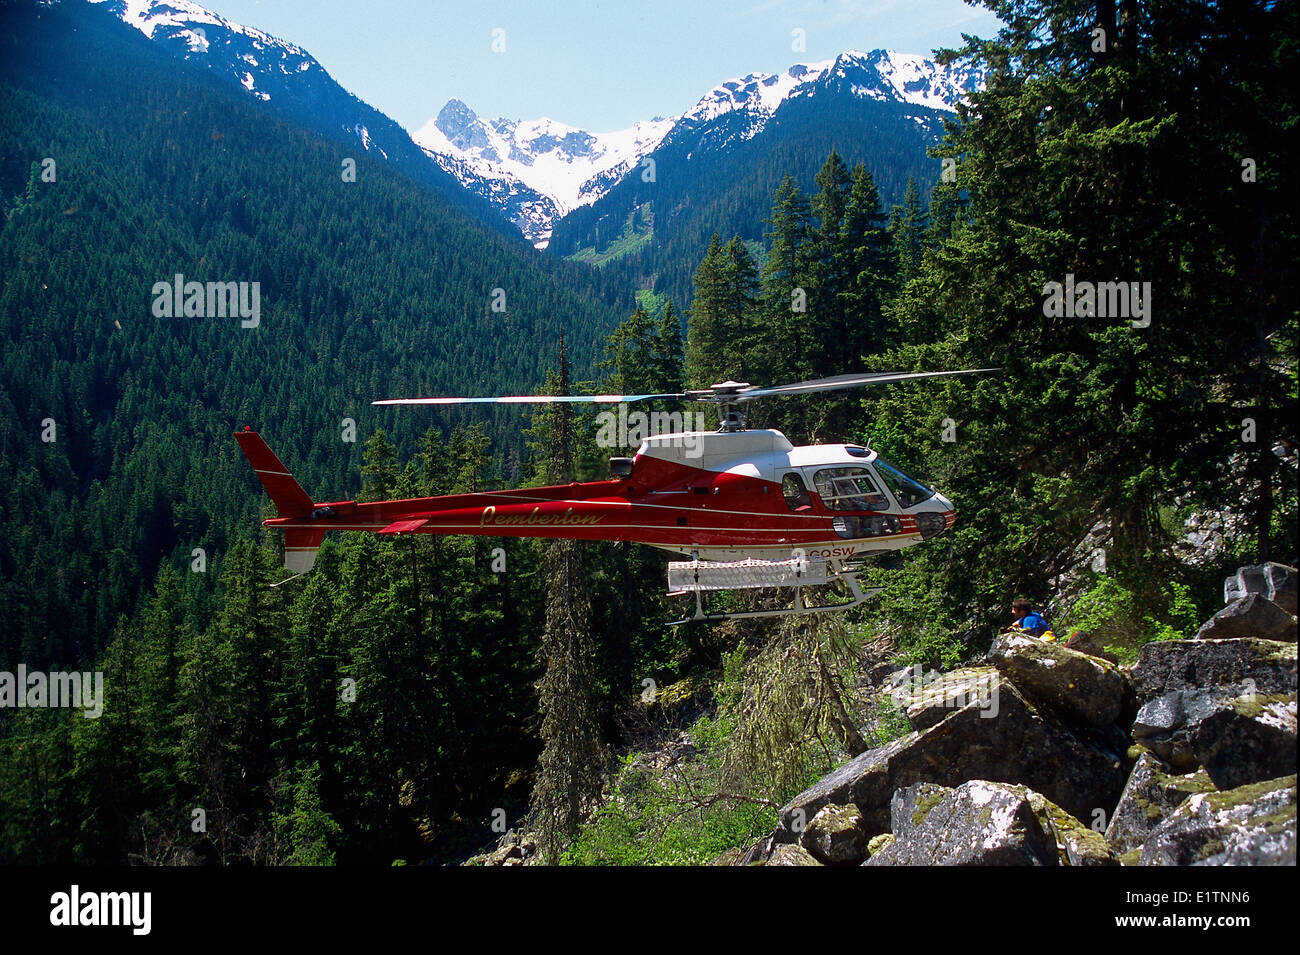 Helicopter hover exit, Billygoat Creek, Pemberton, biology, spotted owl survey, BC, Canada - Stock Image